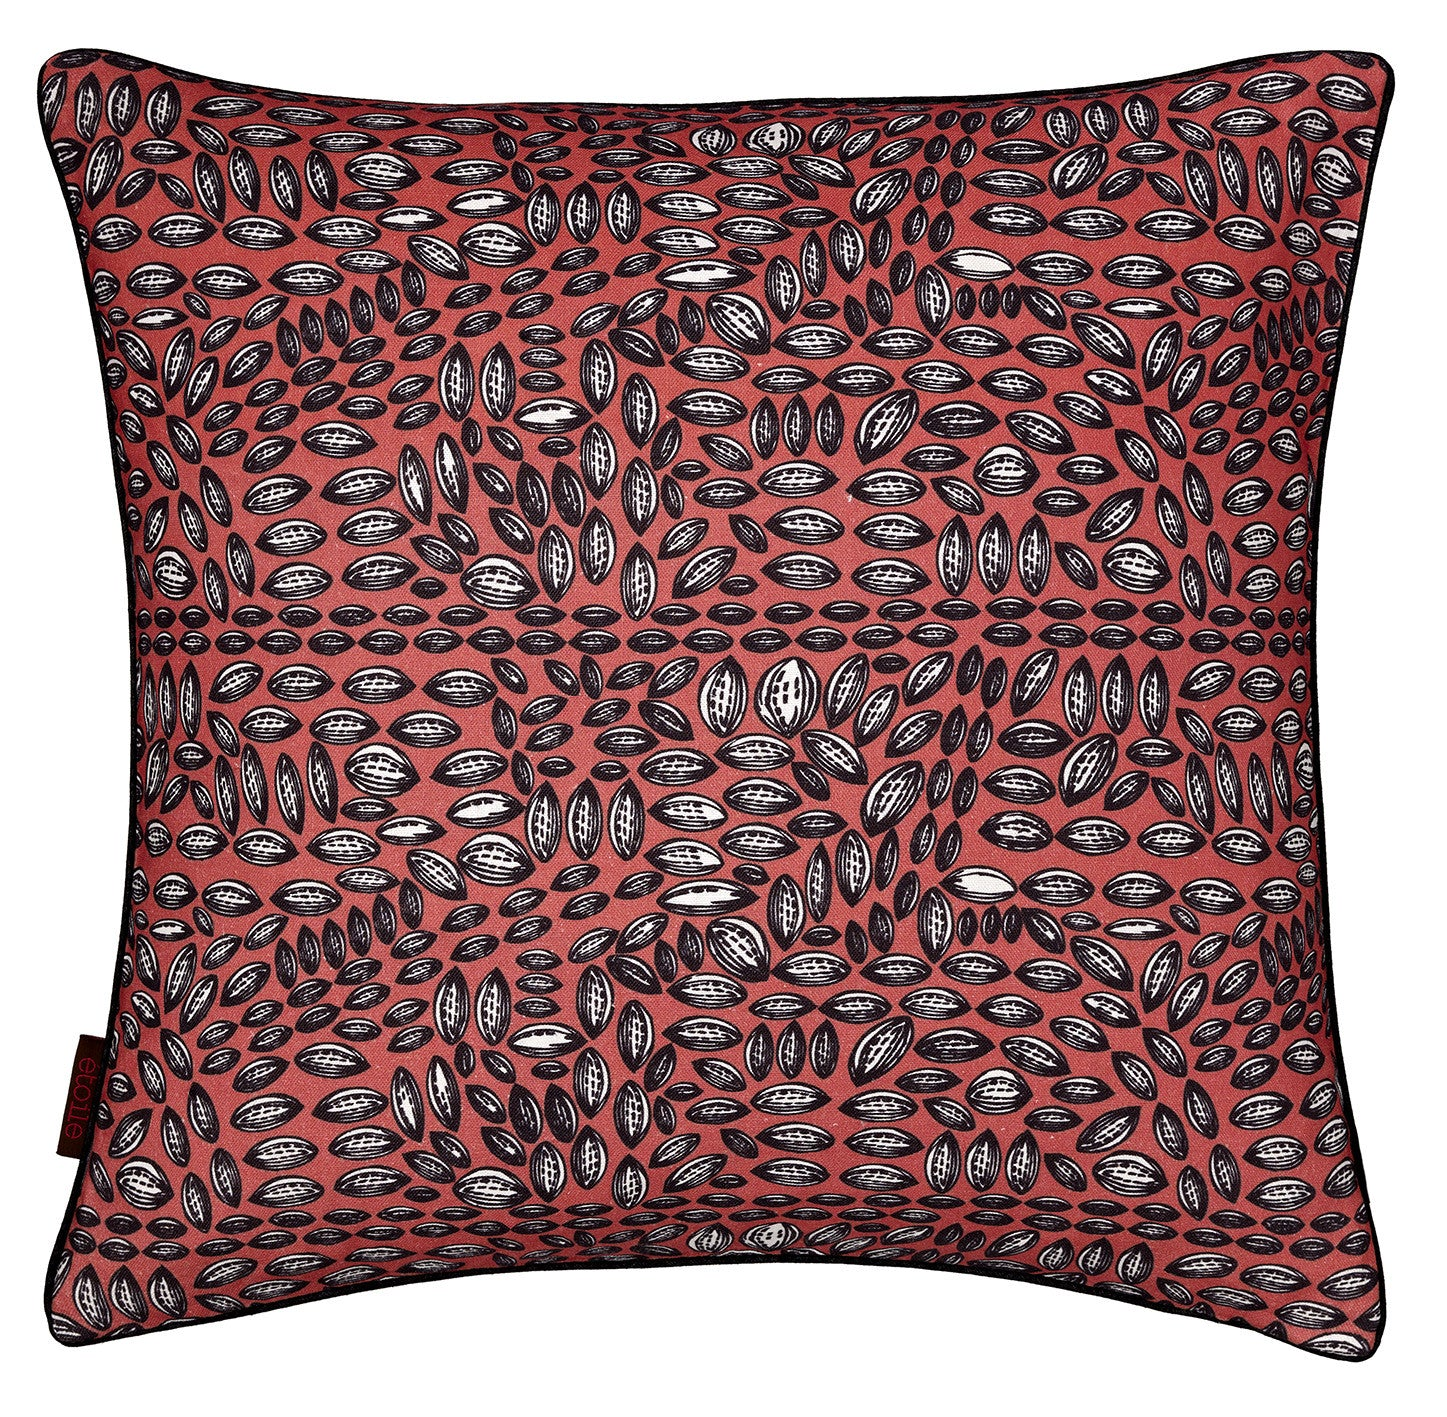 home pillowcase natural cushion dp com kitchen amazon square couch cover pillow autumn throw pillows decor for linen lined l x brilliant